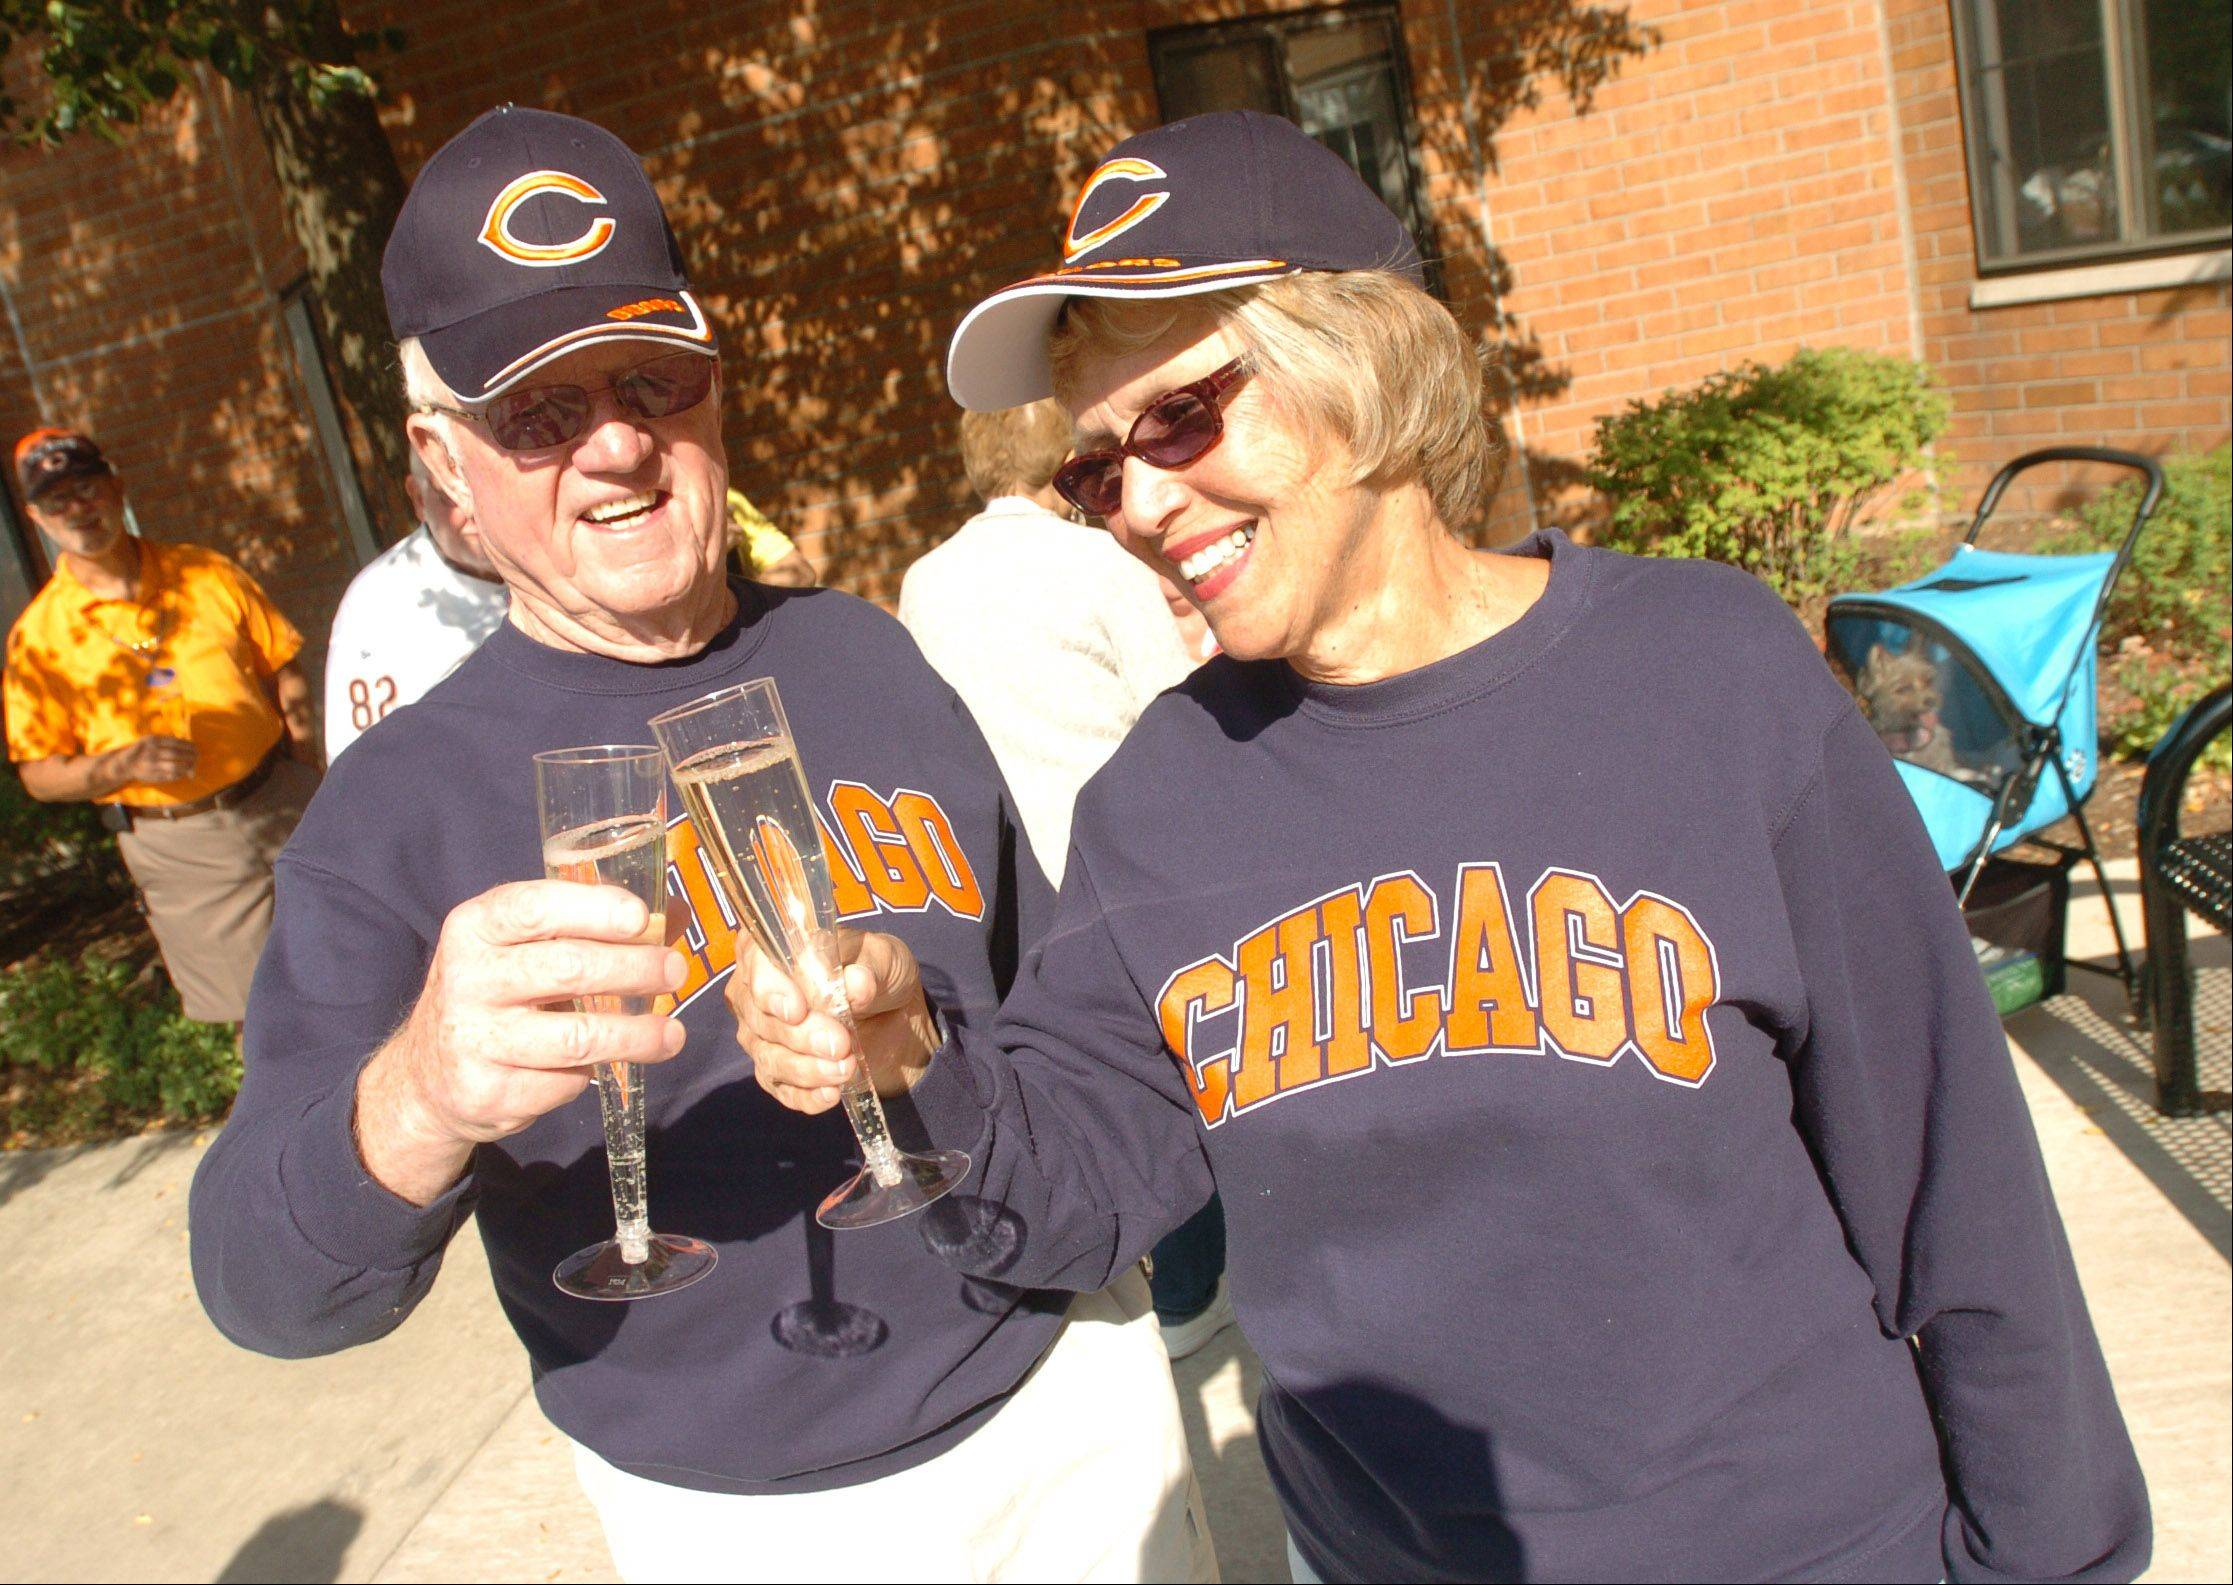 The Golden Wishes program in Bensenville this fall gave Chicago Bears tickets and a round-trip limo ride to the game for Jim and Lauri Collins, pictured, as well as resident Betty Madland and her son, George.